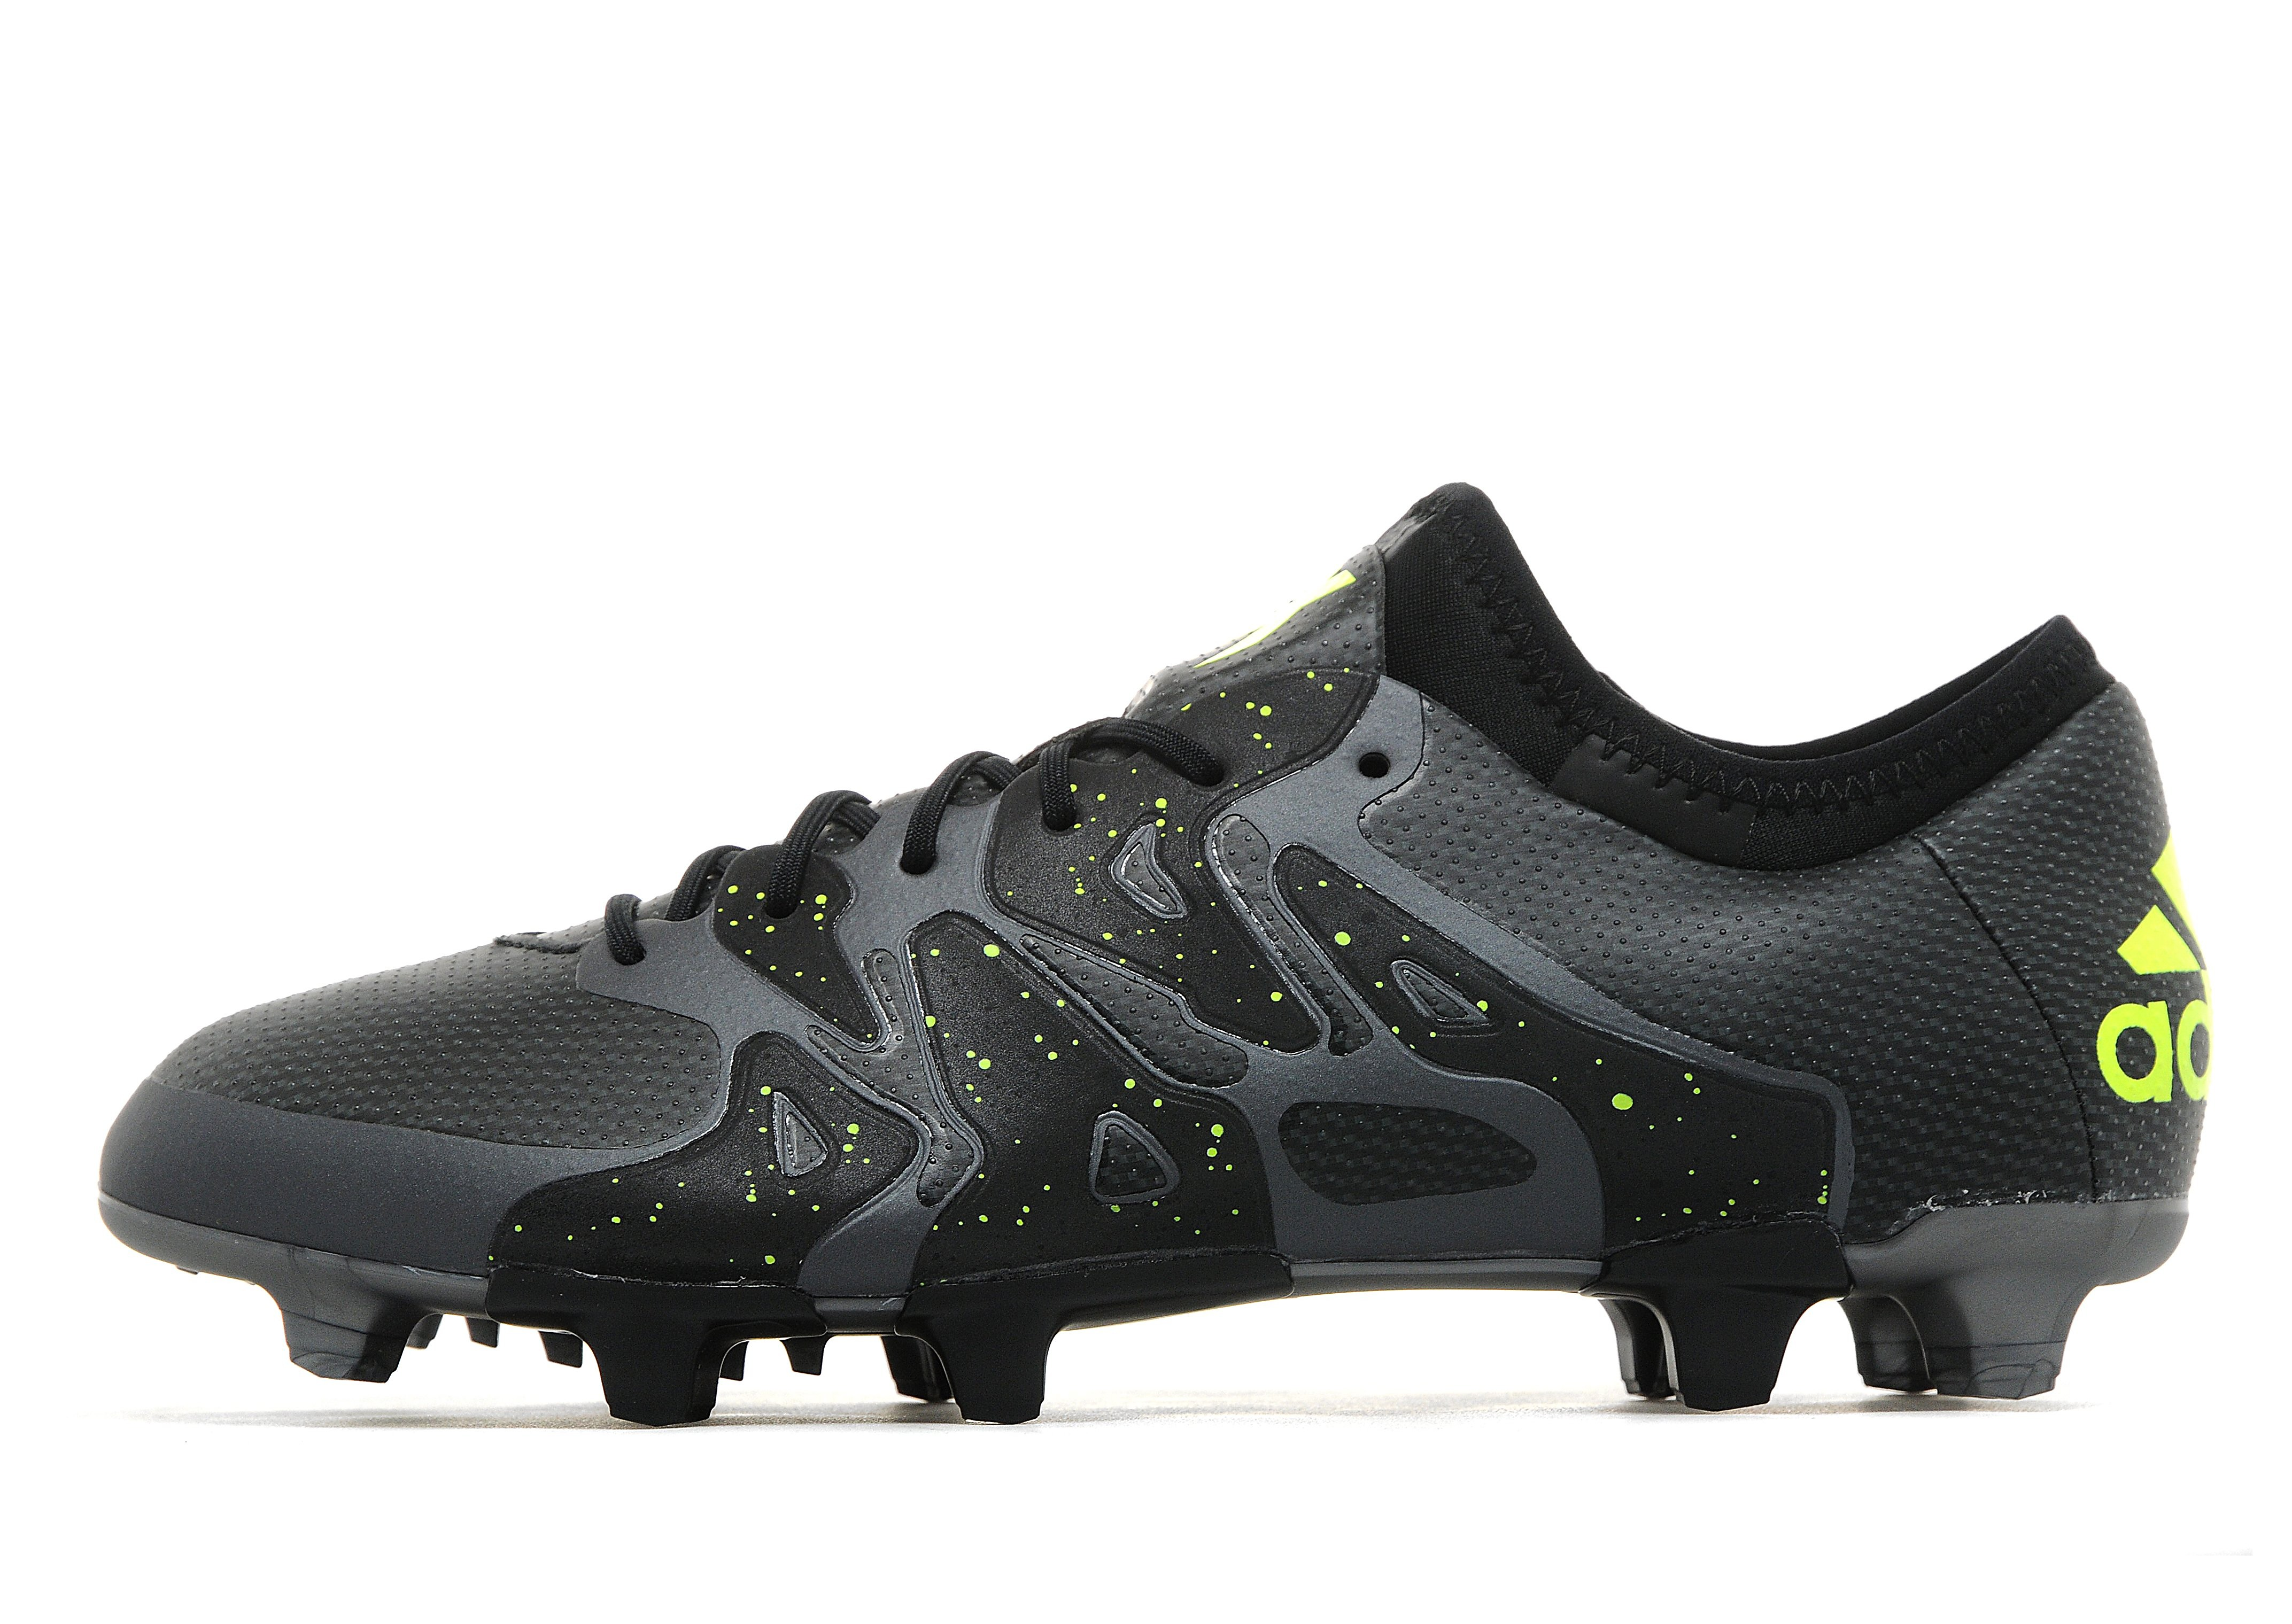 soccer boots cleats adidas x 15 1 fg black yellow grey. Black Bedroom Furniture Sets. Home Design Ideas